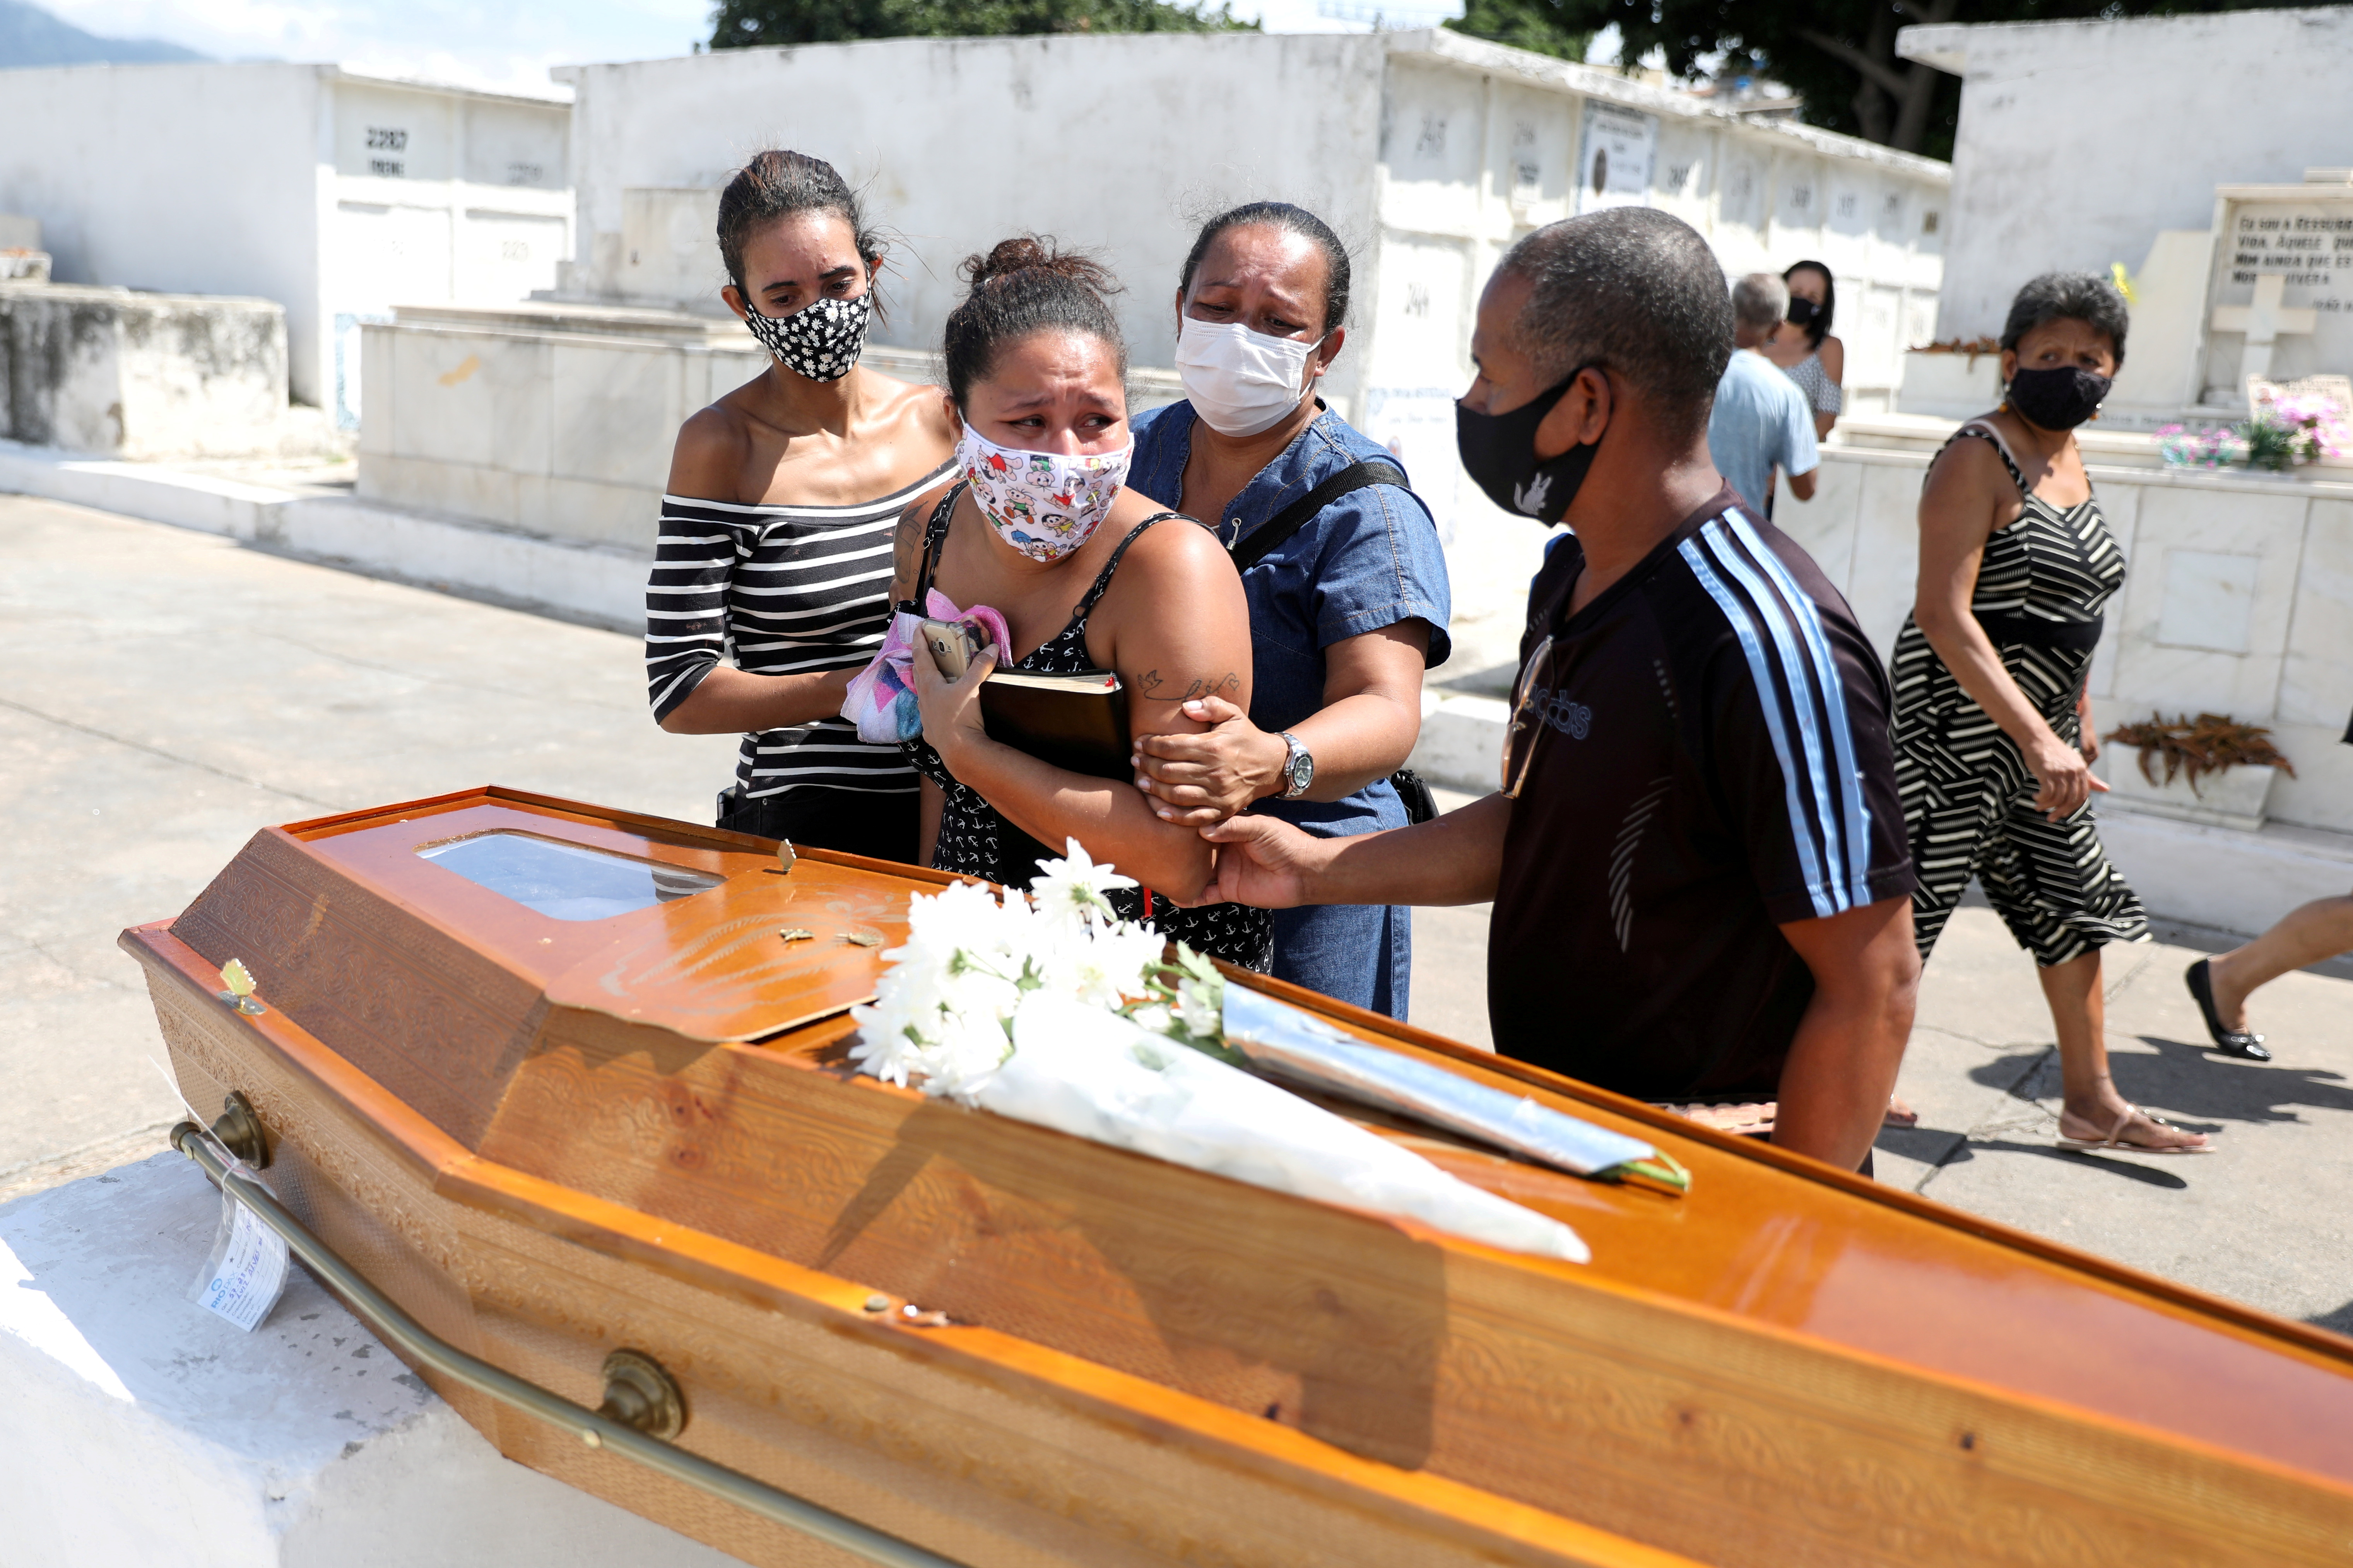 Relatives of Luiz Alves, 63, who died from coronavirus disease (COVID-19), react at his funeral at Inhauma cemetery in Rio de Janeiro, Brazil March 10, 2021. REUTERS/Pilar Olivares